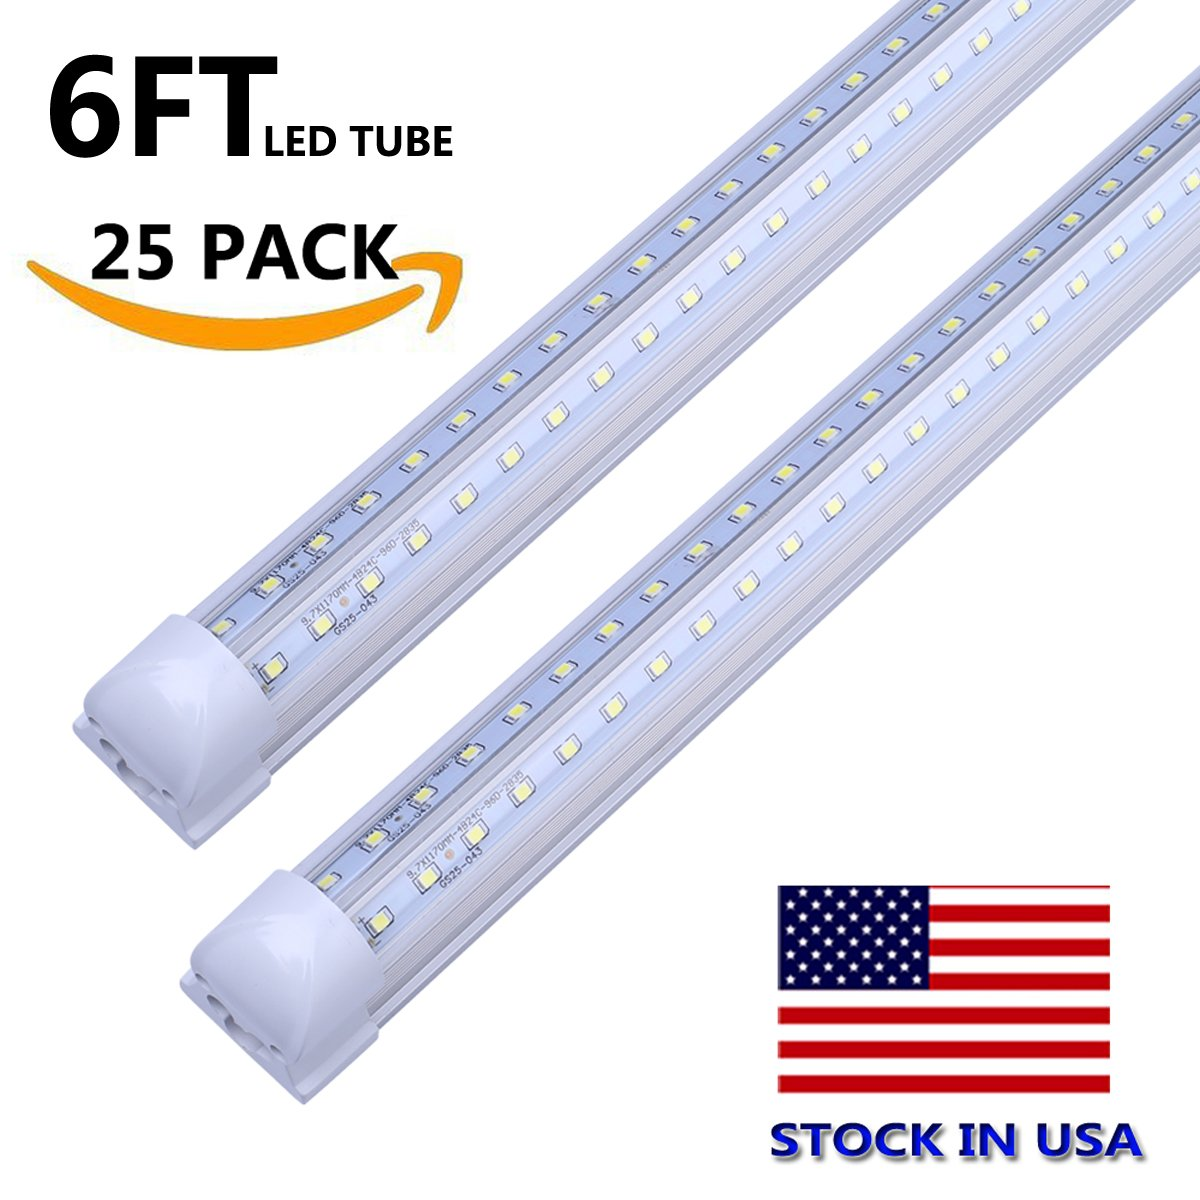 T8 Double Side V-Shape Integrated 270 Degree LED Light Tube Lamp 6FT 56W 120W Equivalent Works without T8 Ballast, Plug and Play, Clear Cover, Cold White 6000K, AC85-265V - Pack of 25 Units